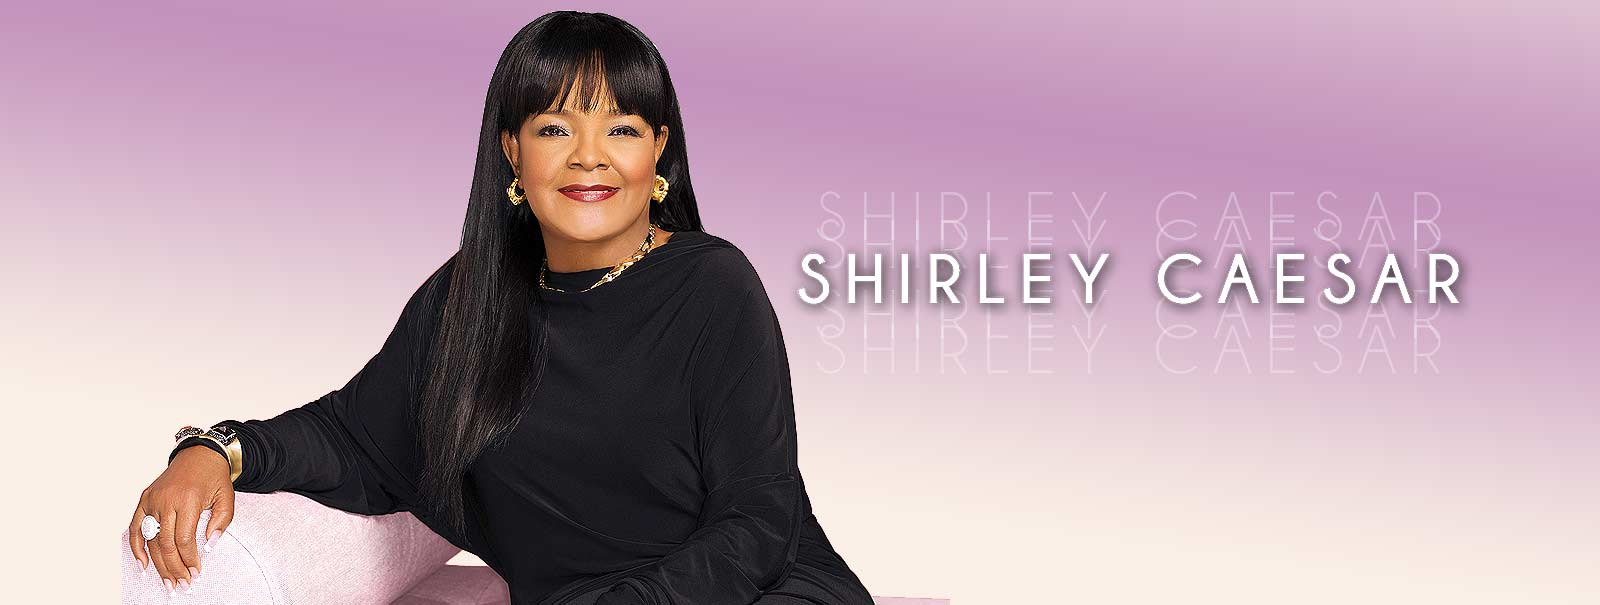 More Info - Broward Center and Ricky DeRae Present Shirley Caesar